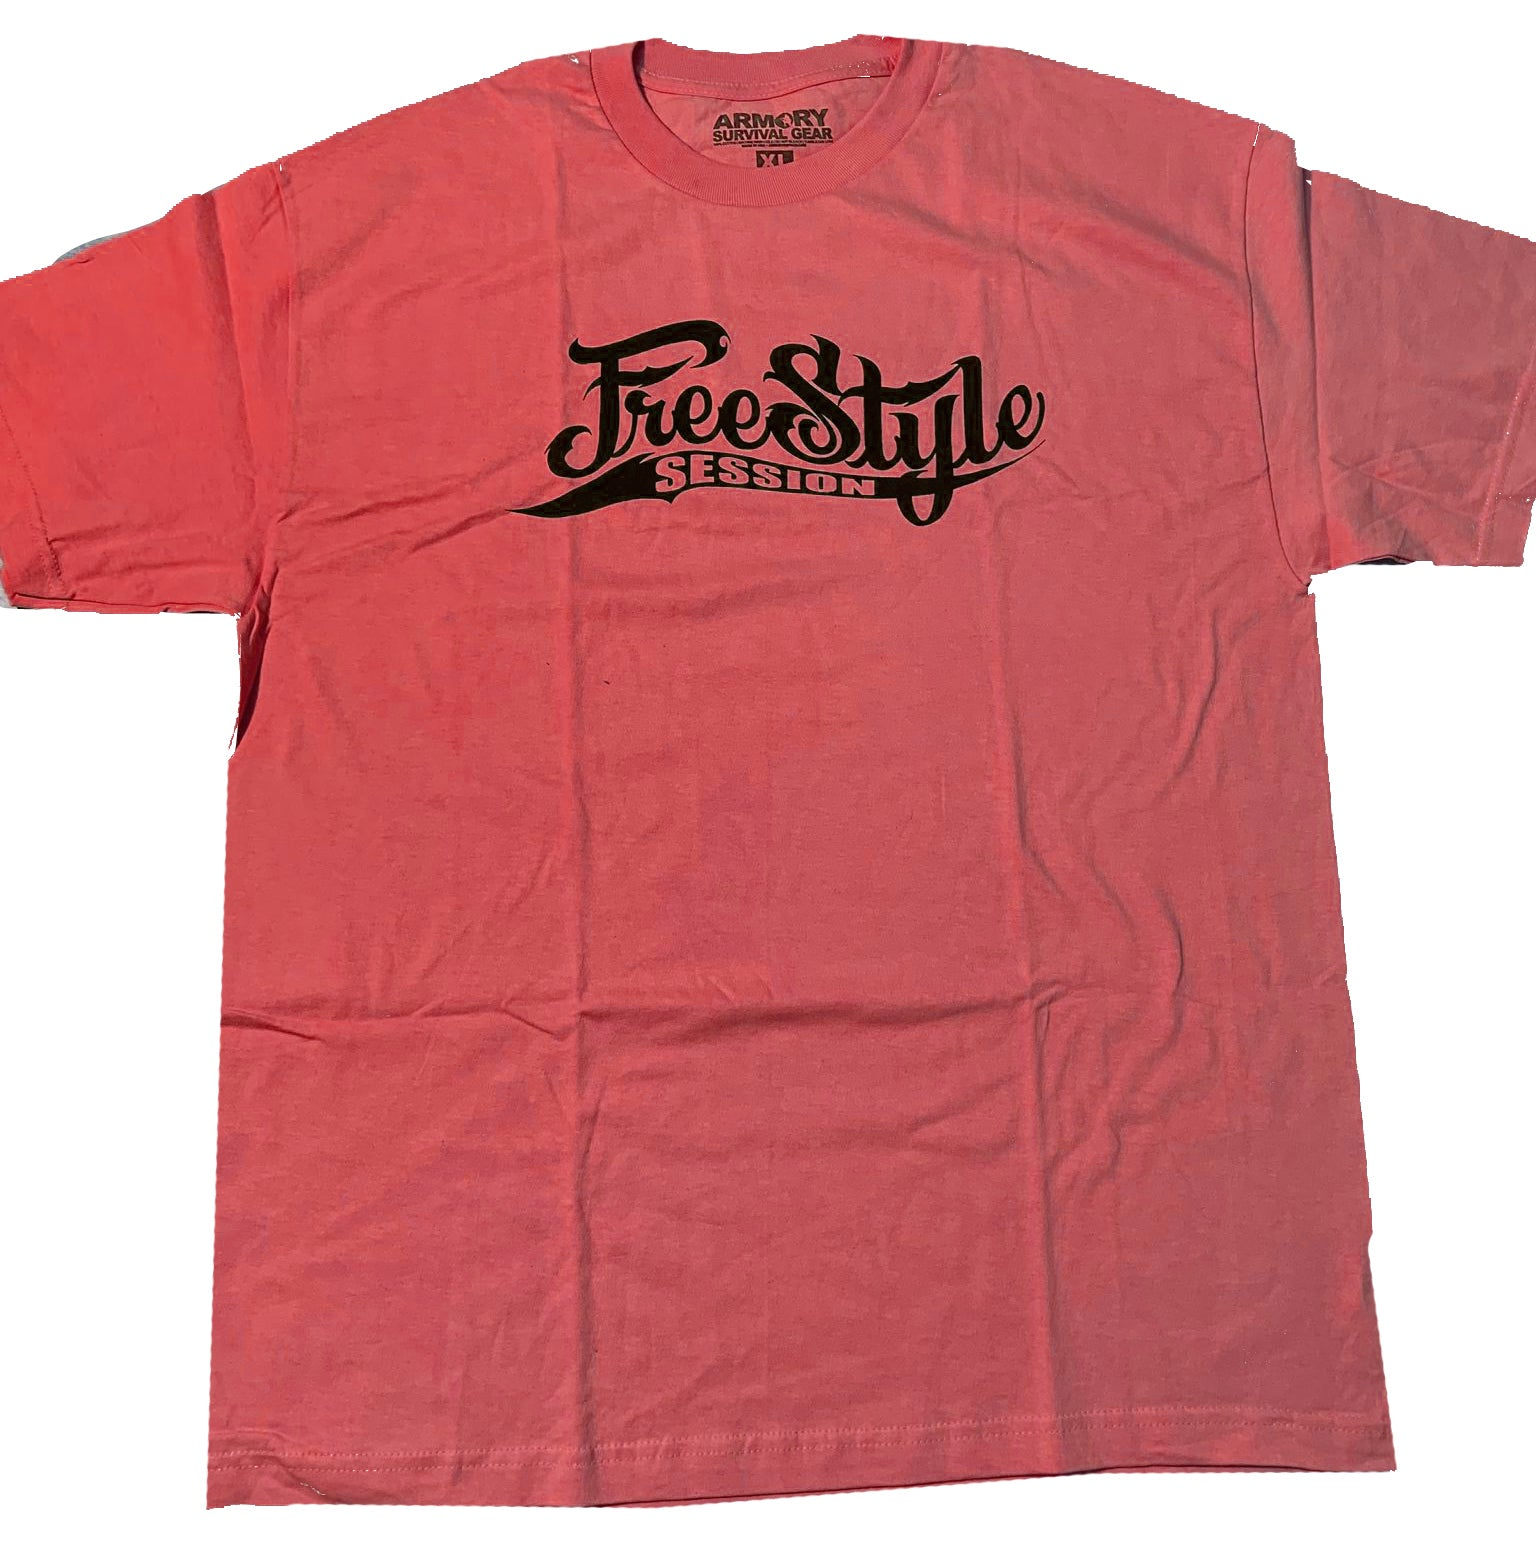 Freestyle Session Logo Tee - Dark Red